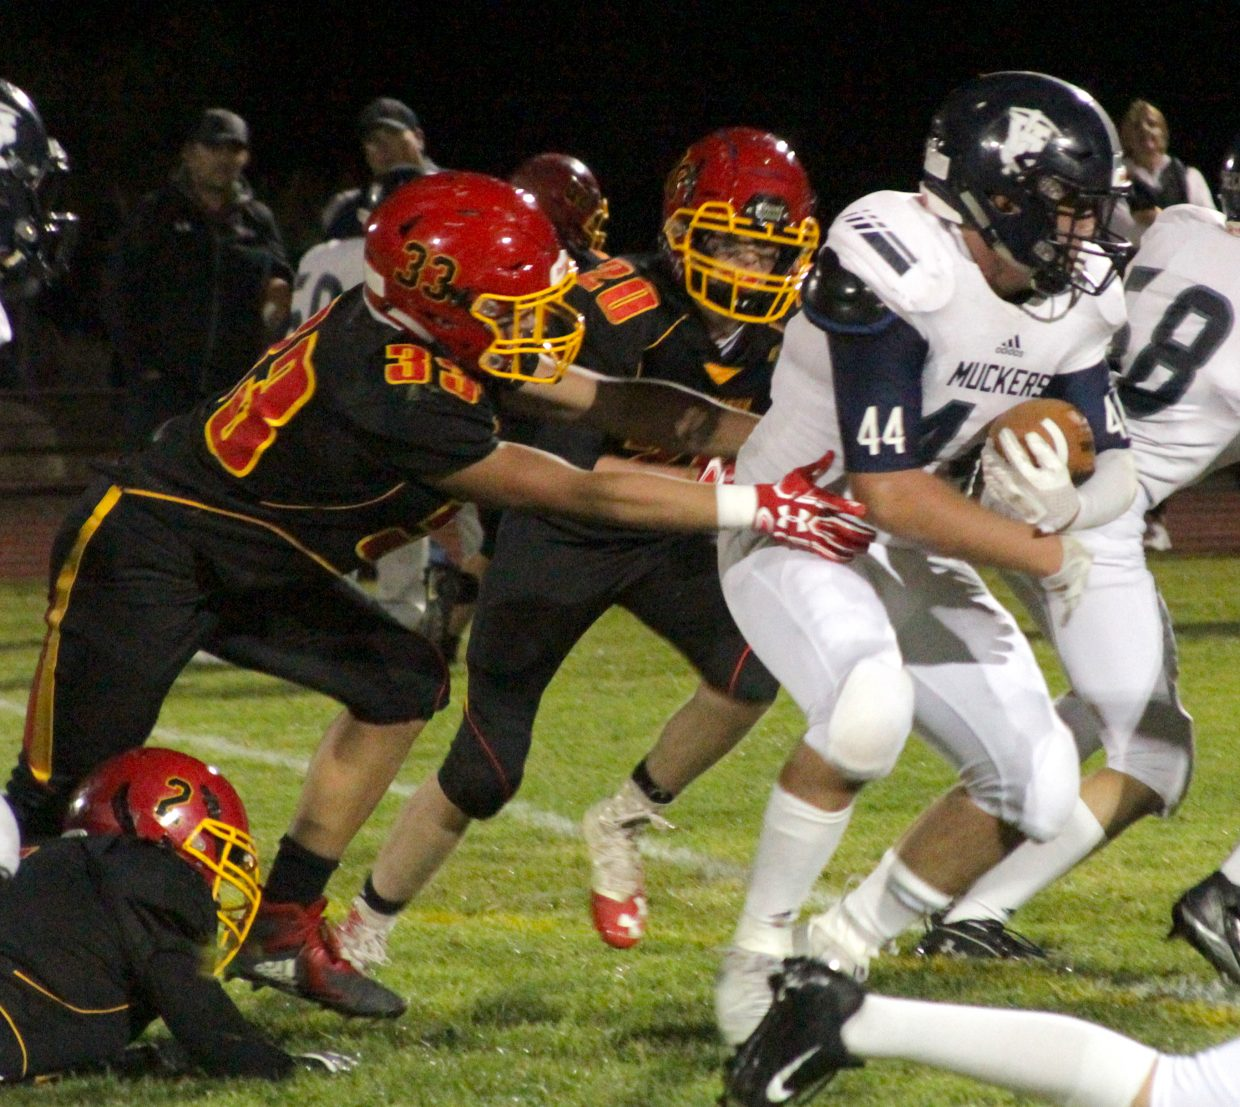 Whittell's DC Nelson (33) and Jack Forvilly (20) try to bring down Virginia City's Tabor Fletcher.